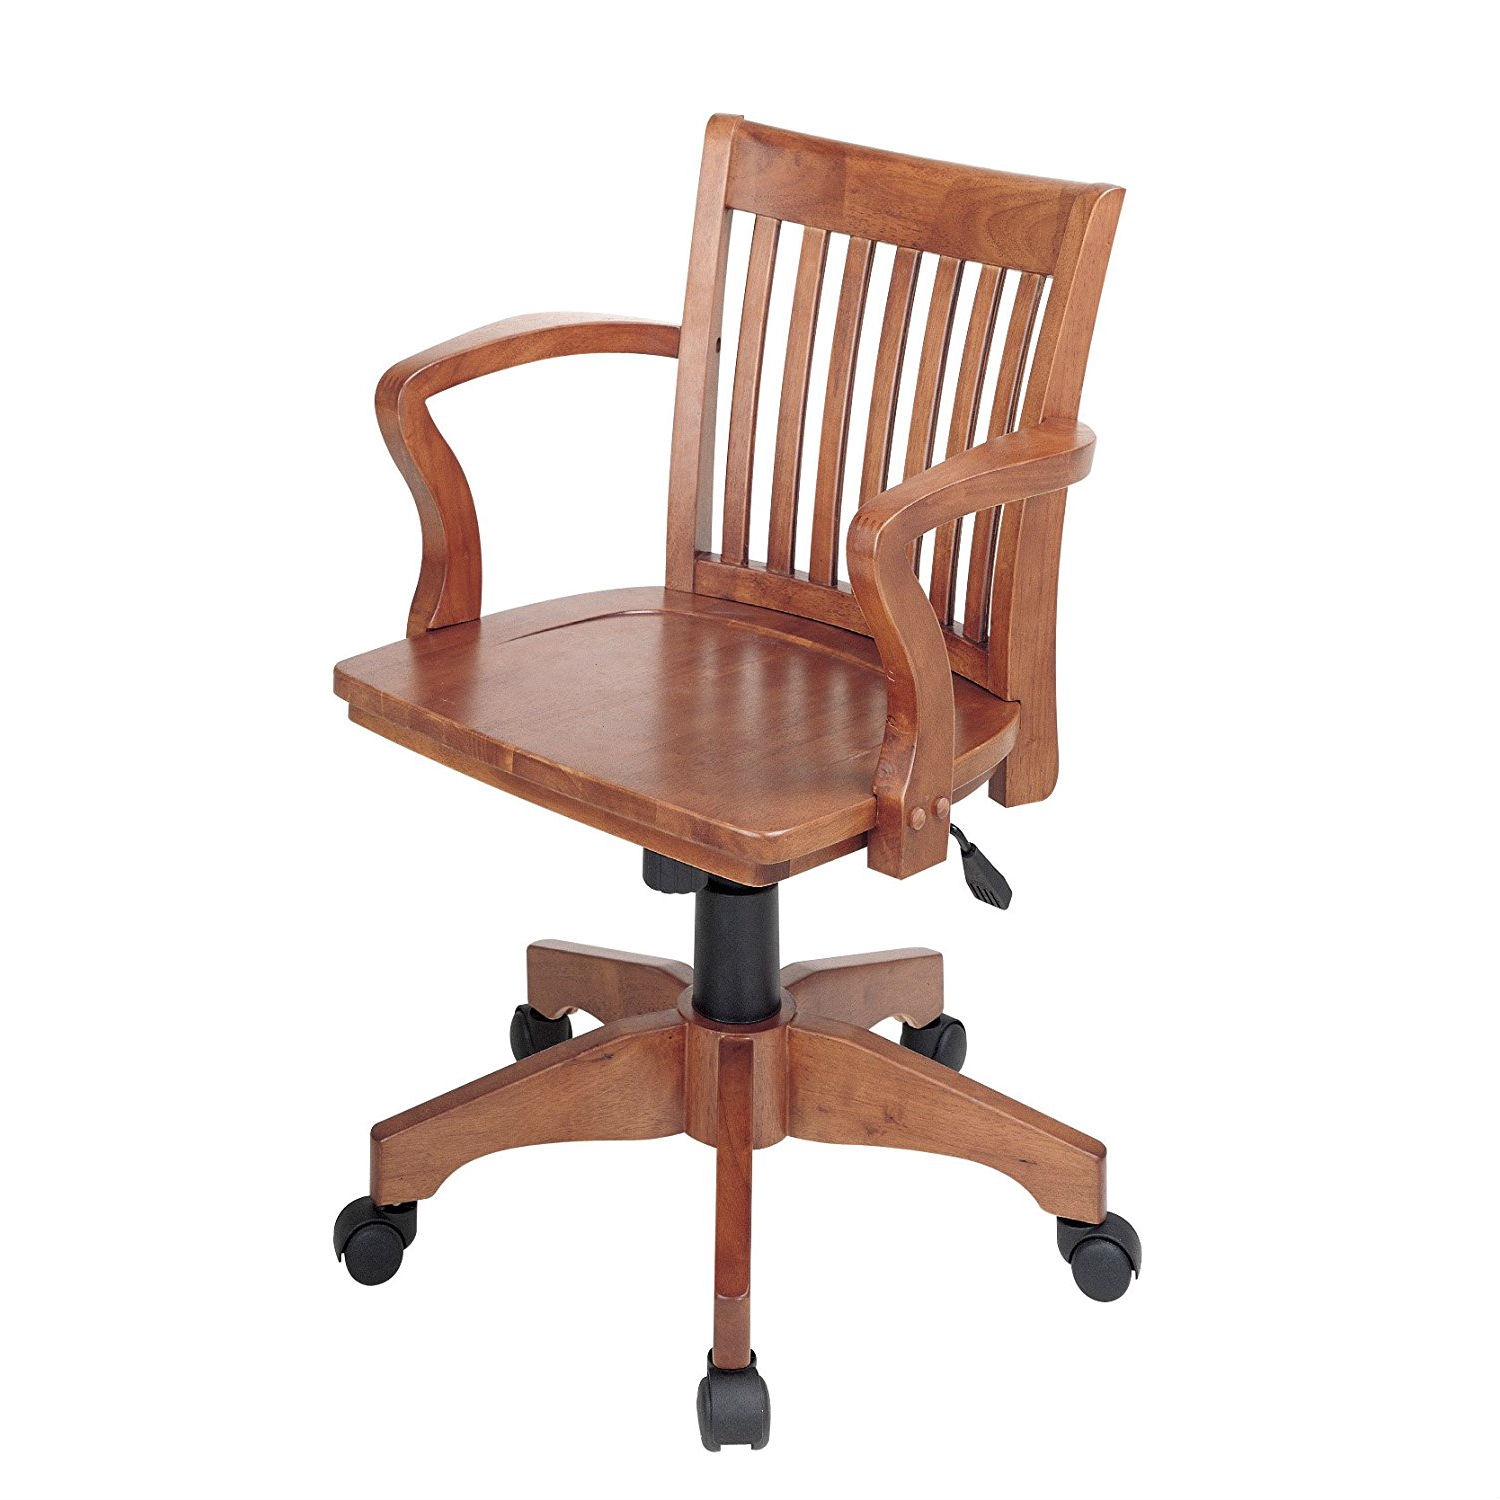 Wooden Bankers Chair Classic Wooden Bankers Chair With Wood Seat And Arms